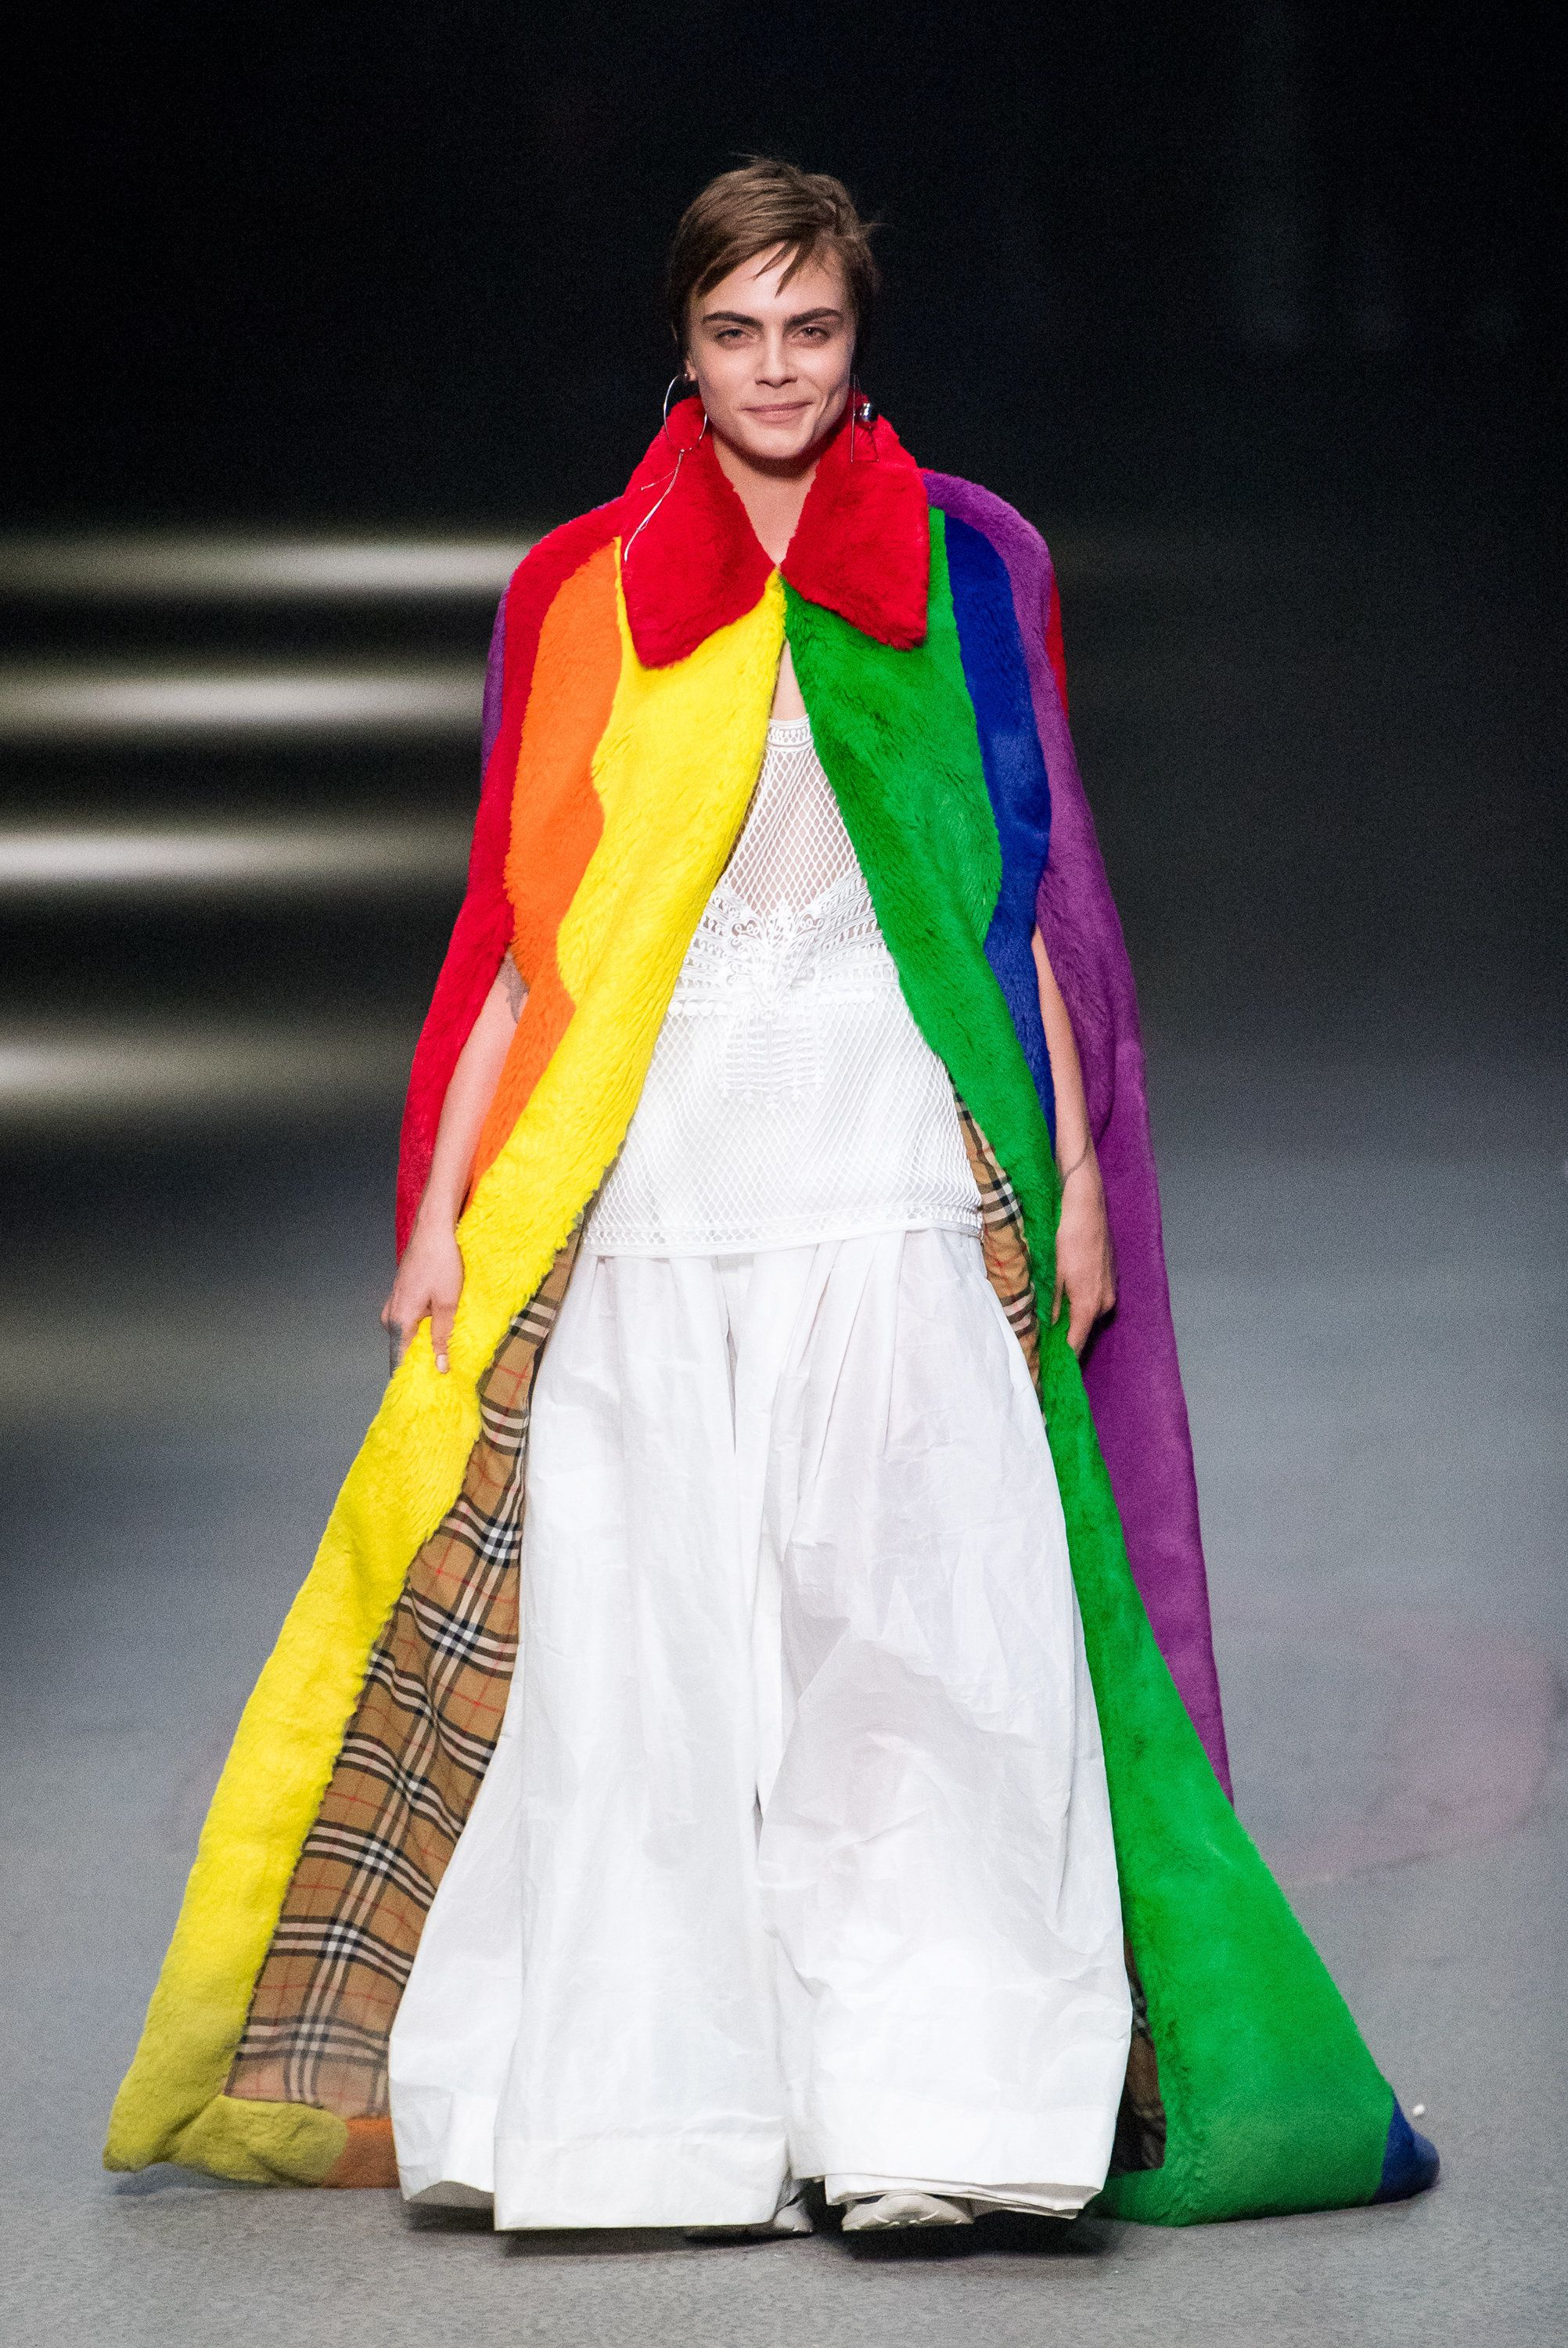 Image result for Burberry LGBT